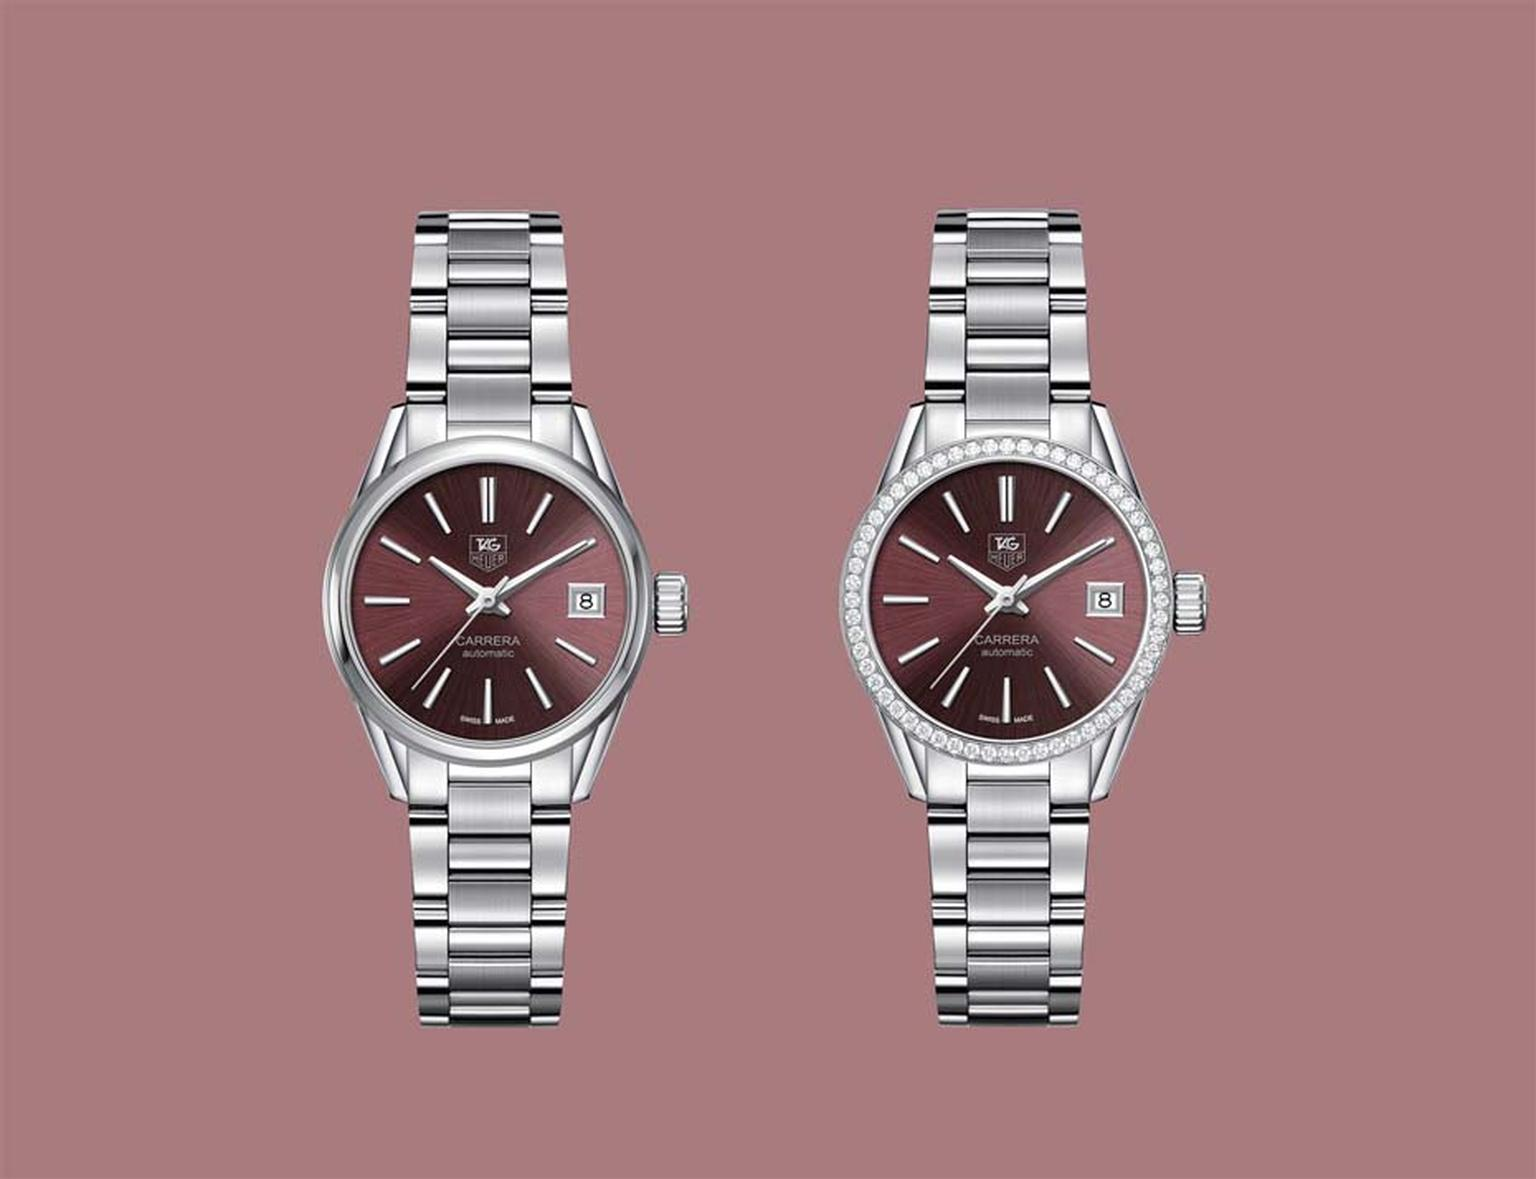 TAG Heuer watches Carrera Lady 28mm is a ladies version of the legendary Carrera watch of 1964. The sleek, fully integrated steel bracelet gives this watch a cool streamlined profile.